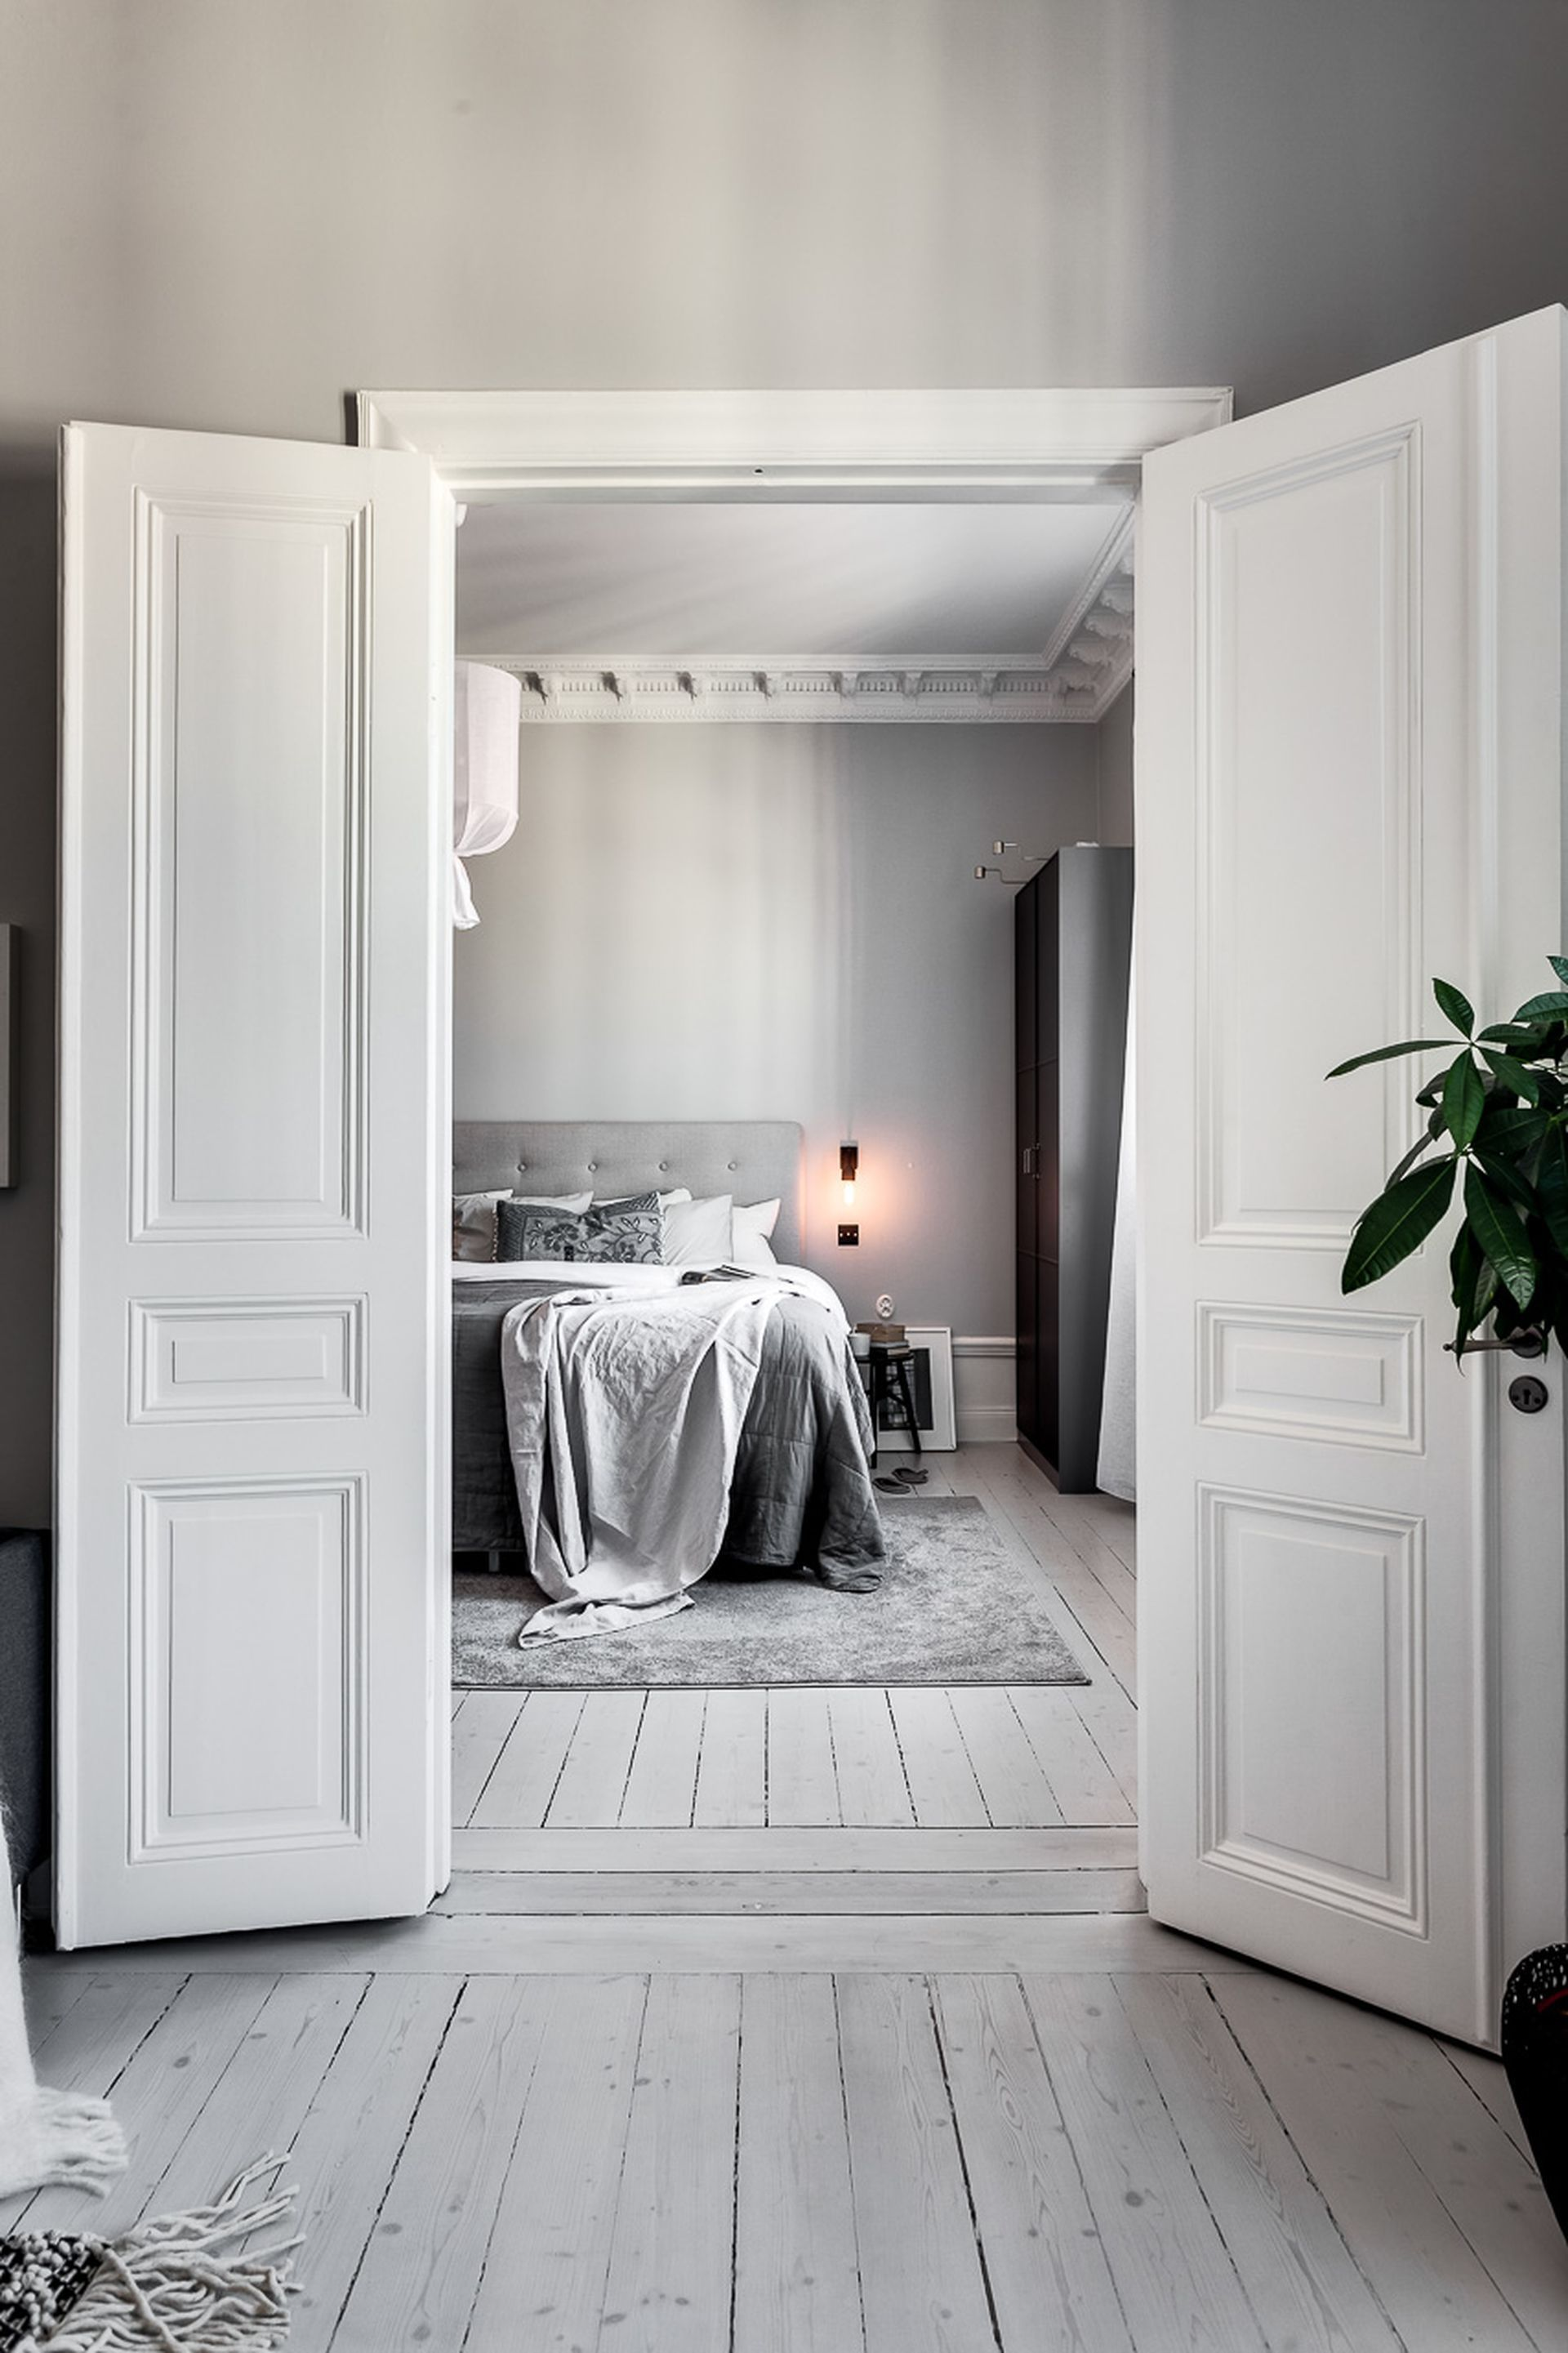 Pin by Diana Allen on Sleep Bedroom Decor in 2020 Home